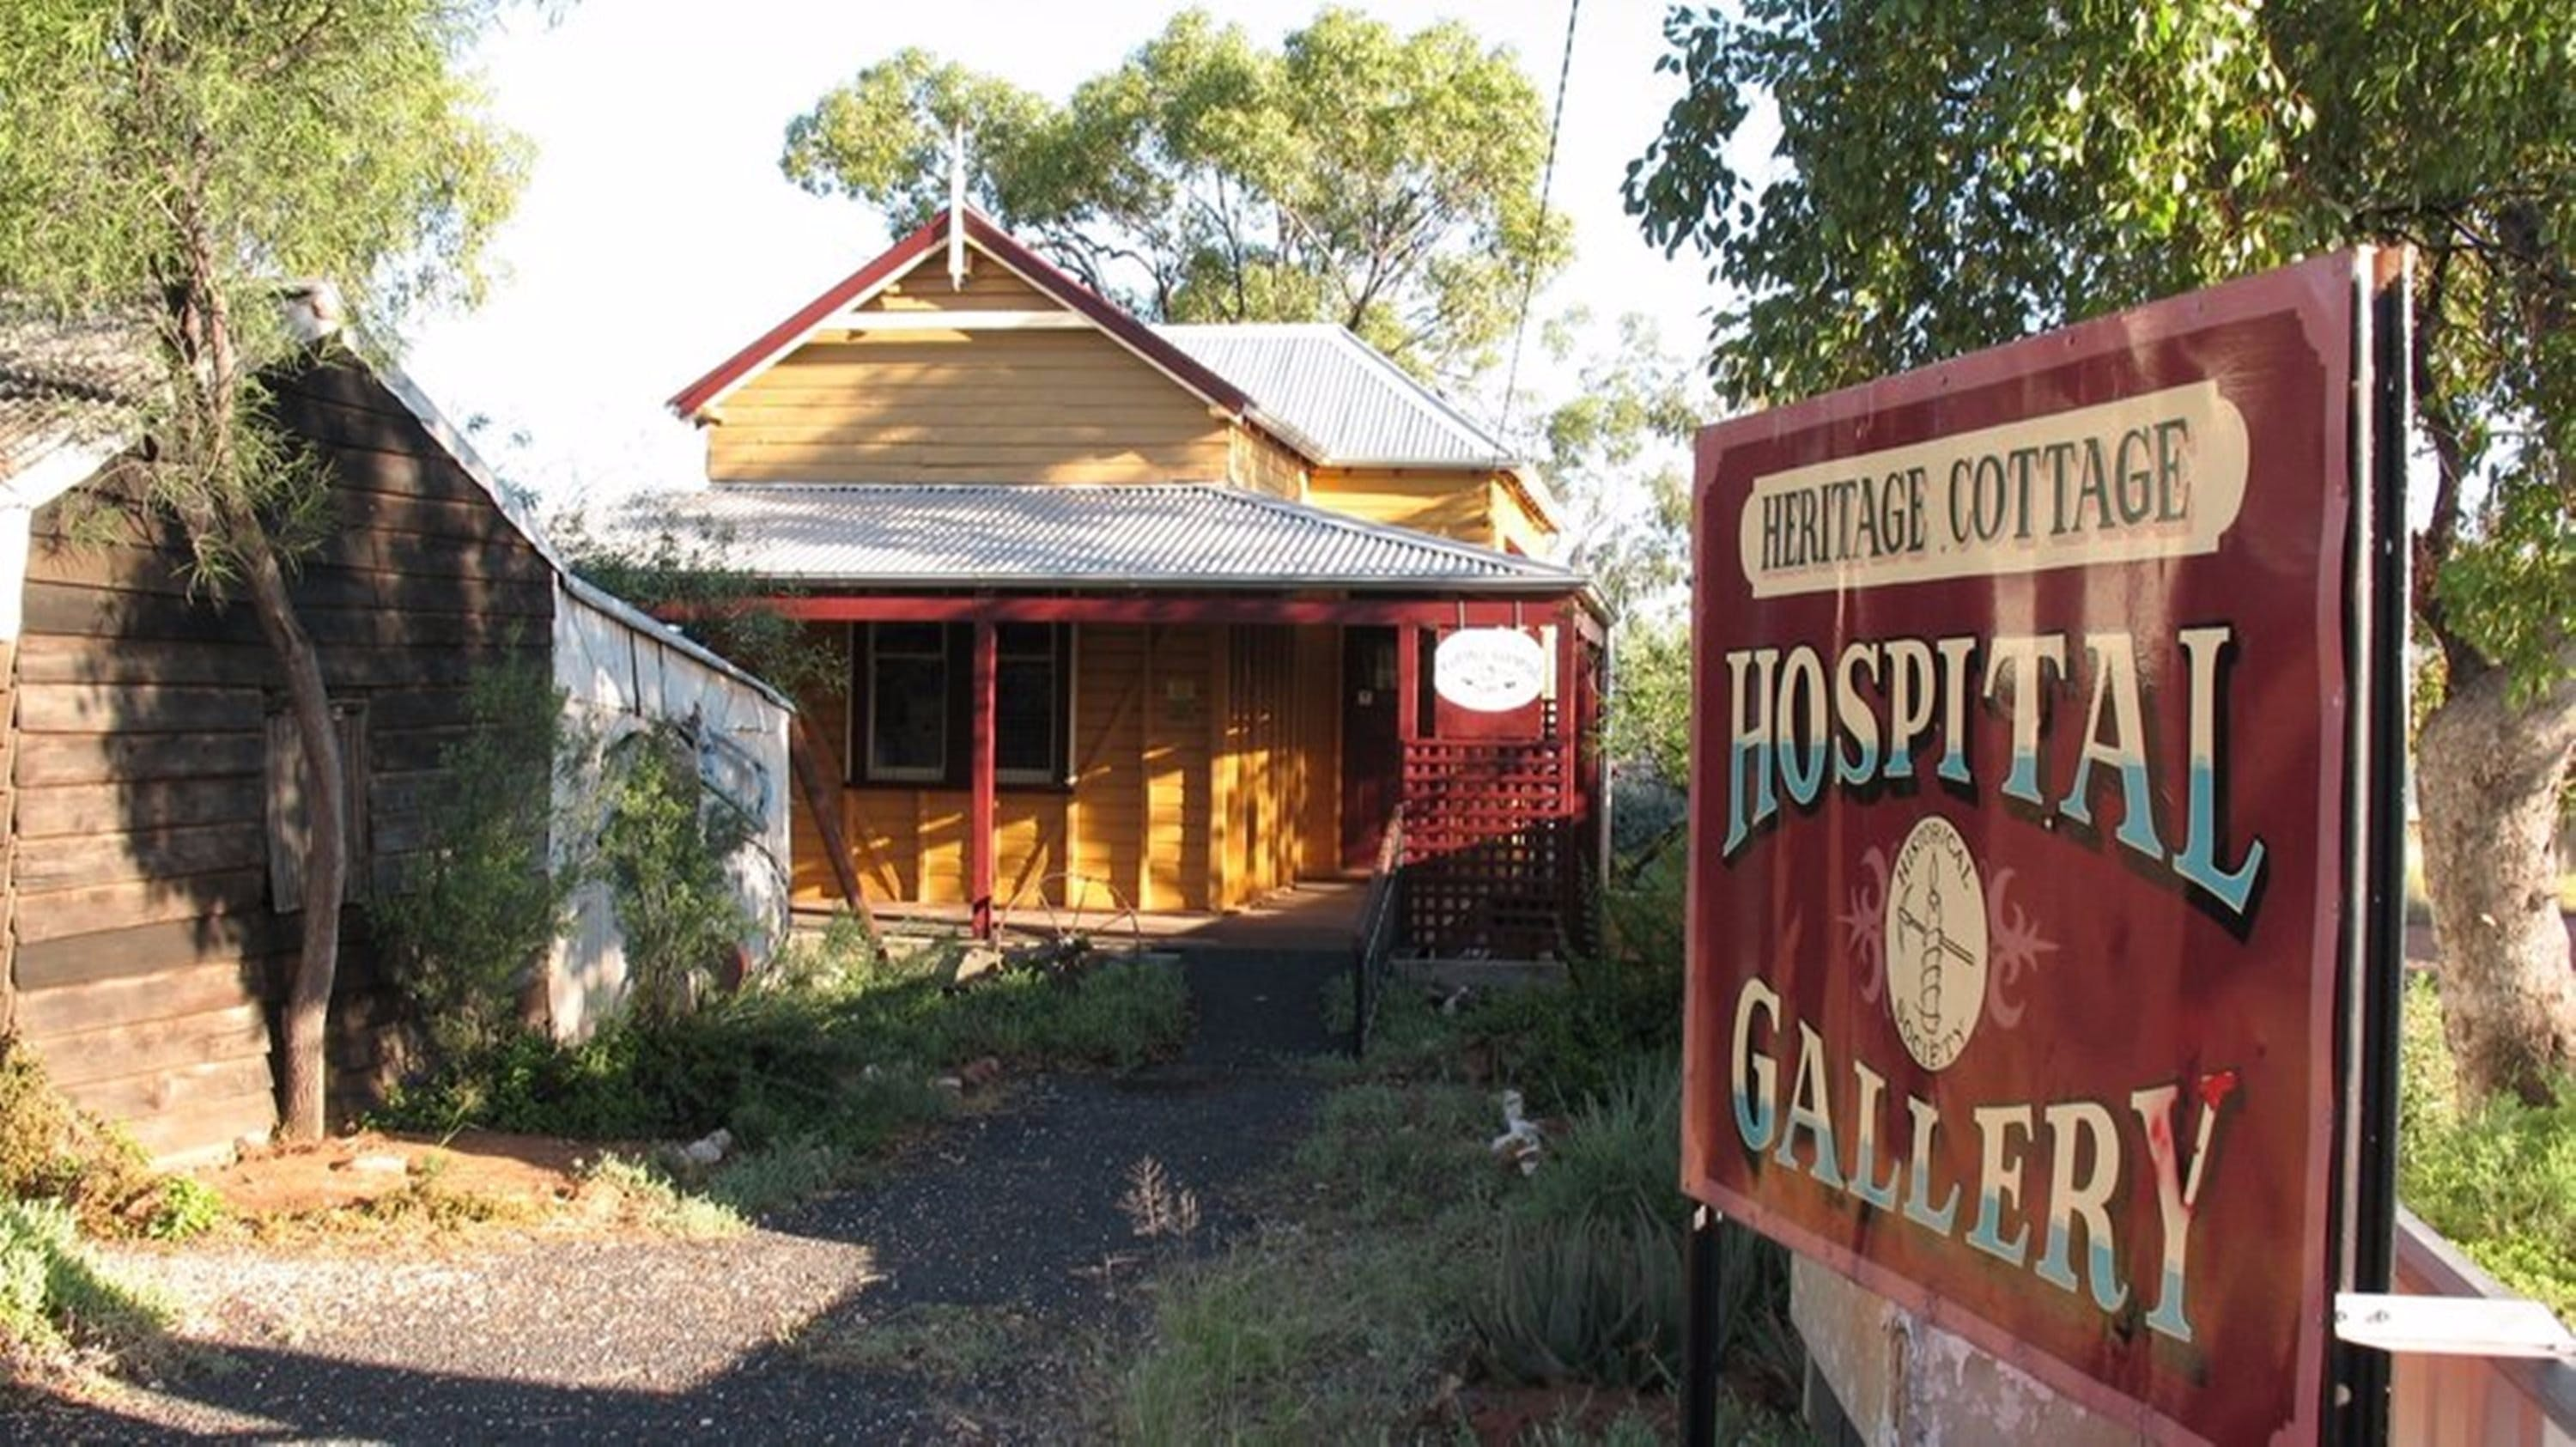 Lightning Ridge Heritage Cottage - South Australia Travel